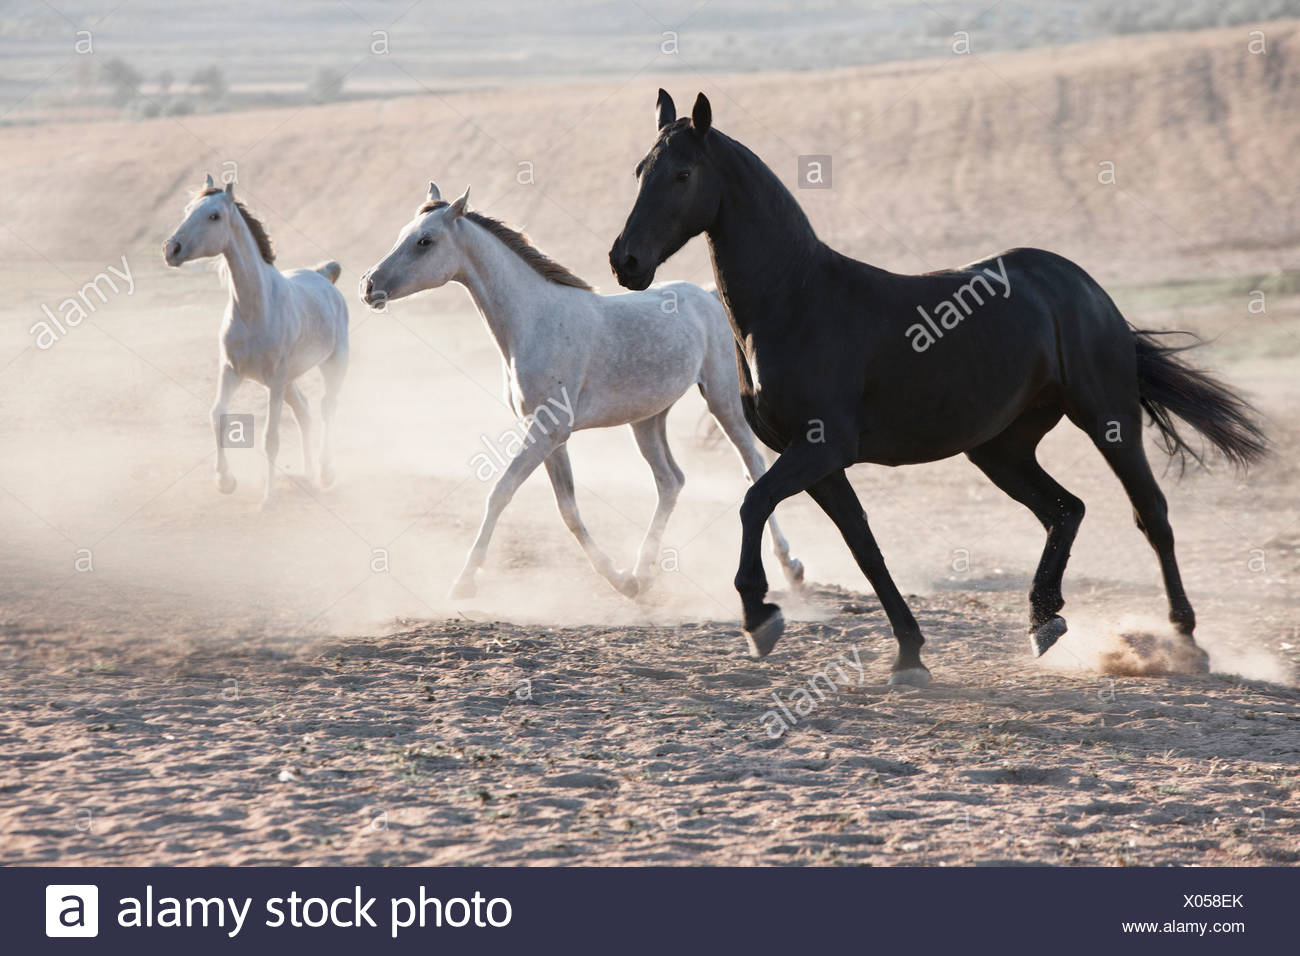 Horses running in dusty pen - Stock Image